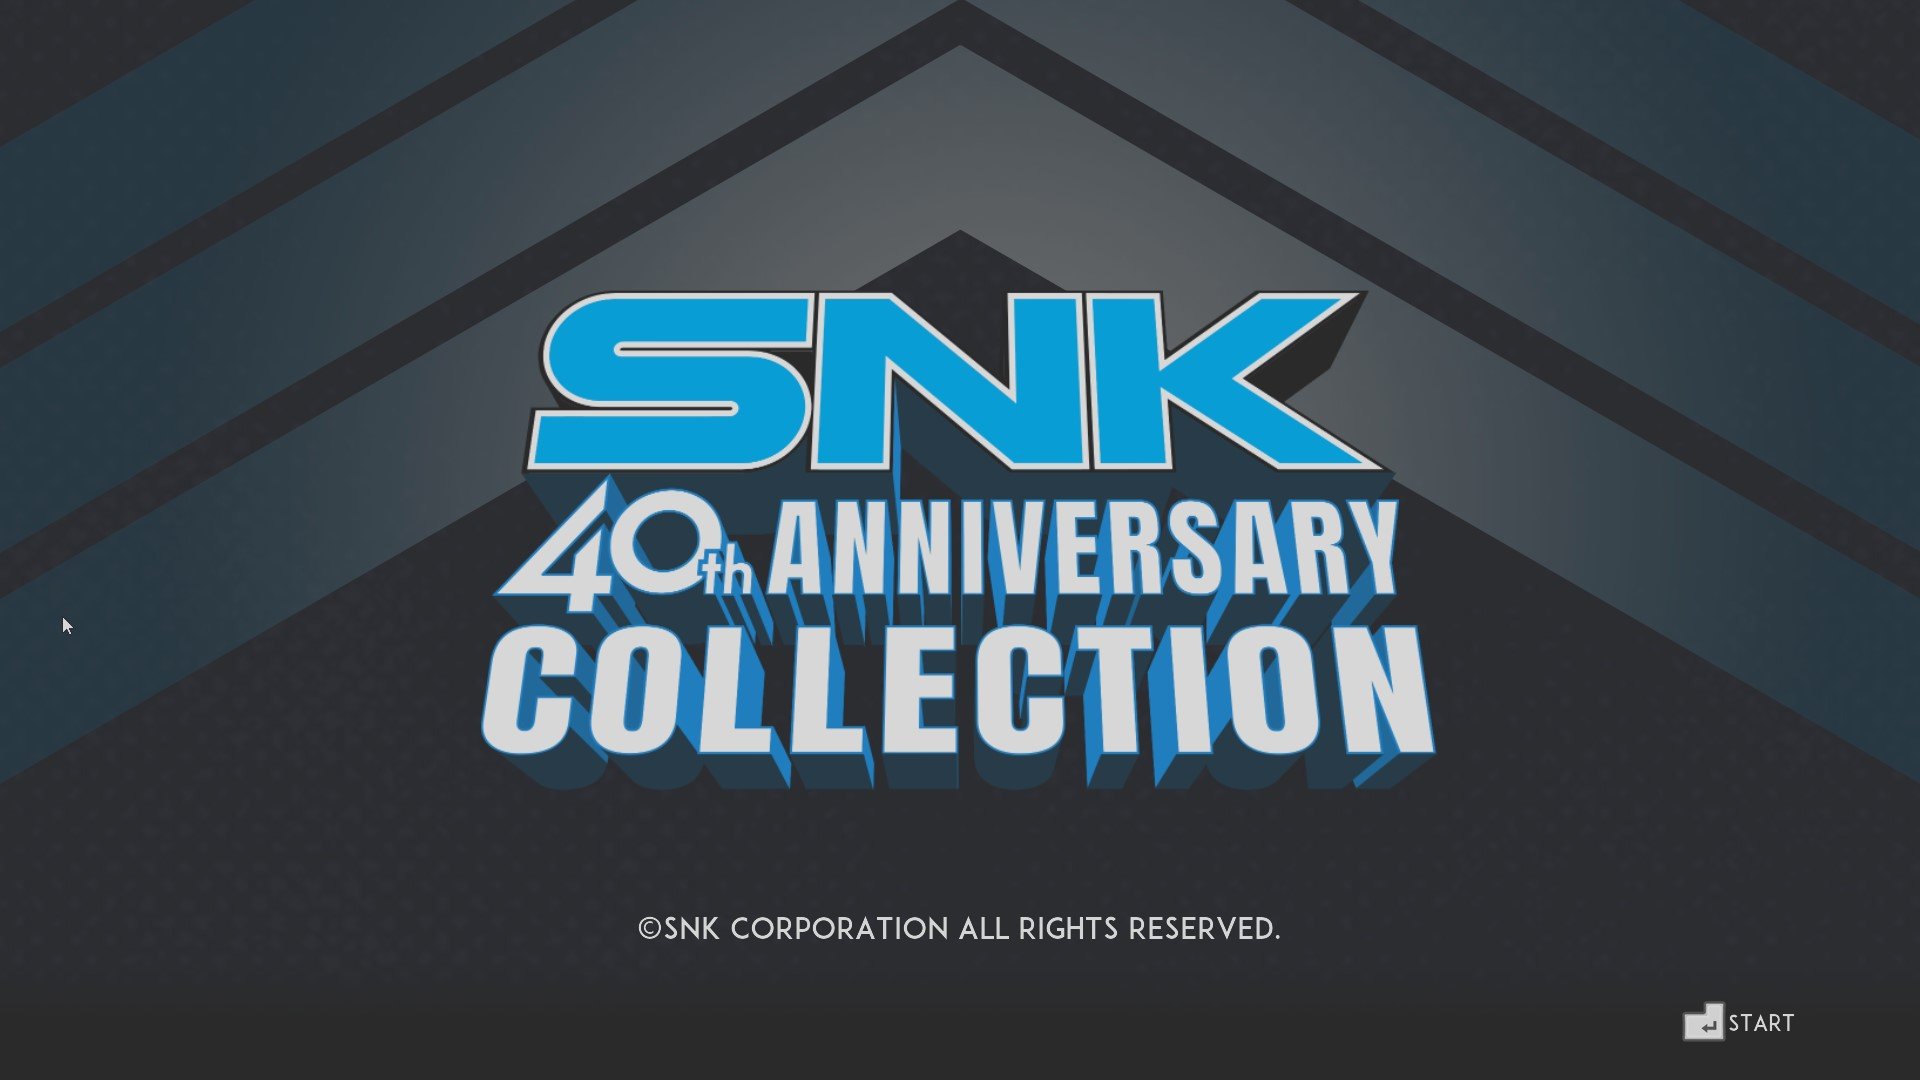 AkinNahtanoj: SNK 40th Anniversary Collection: Alpha Mission [Console] (PC) 31,720 points on 2020-08-22 12:39:21